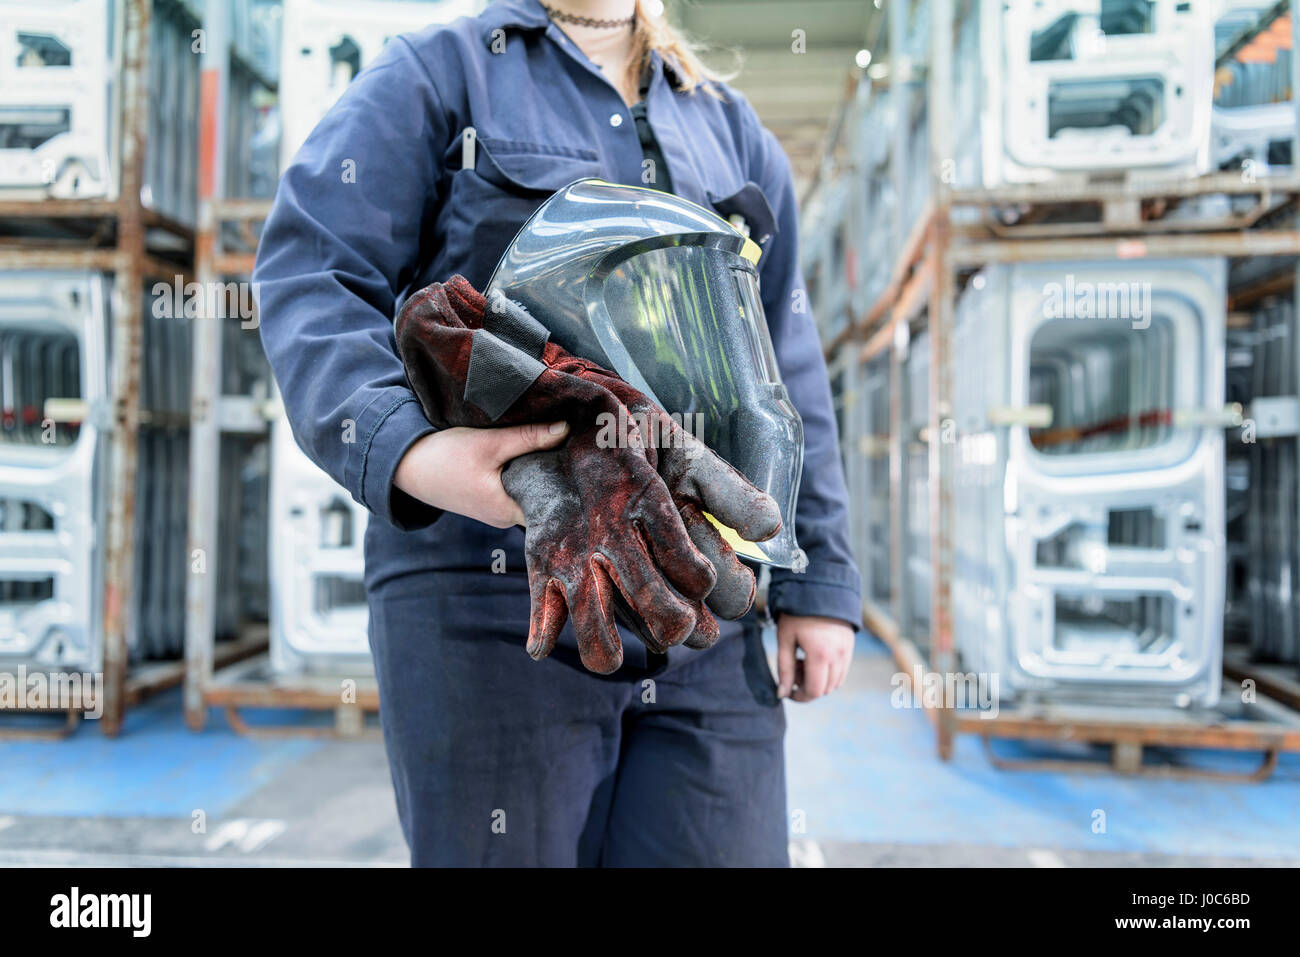 Female apprentice welder holding equipment in car factory - Stock Image